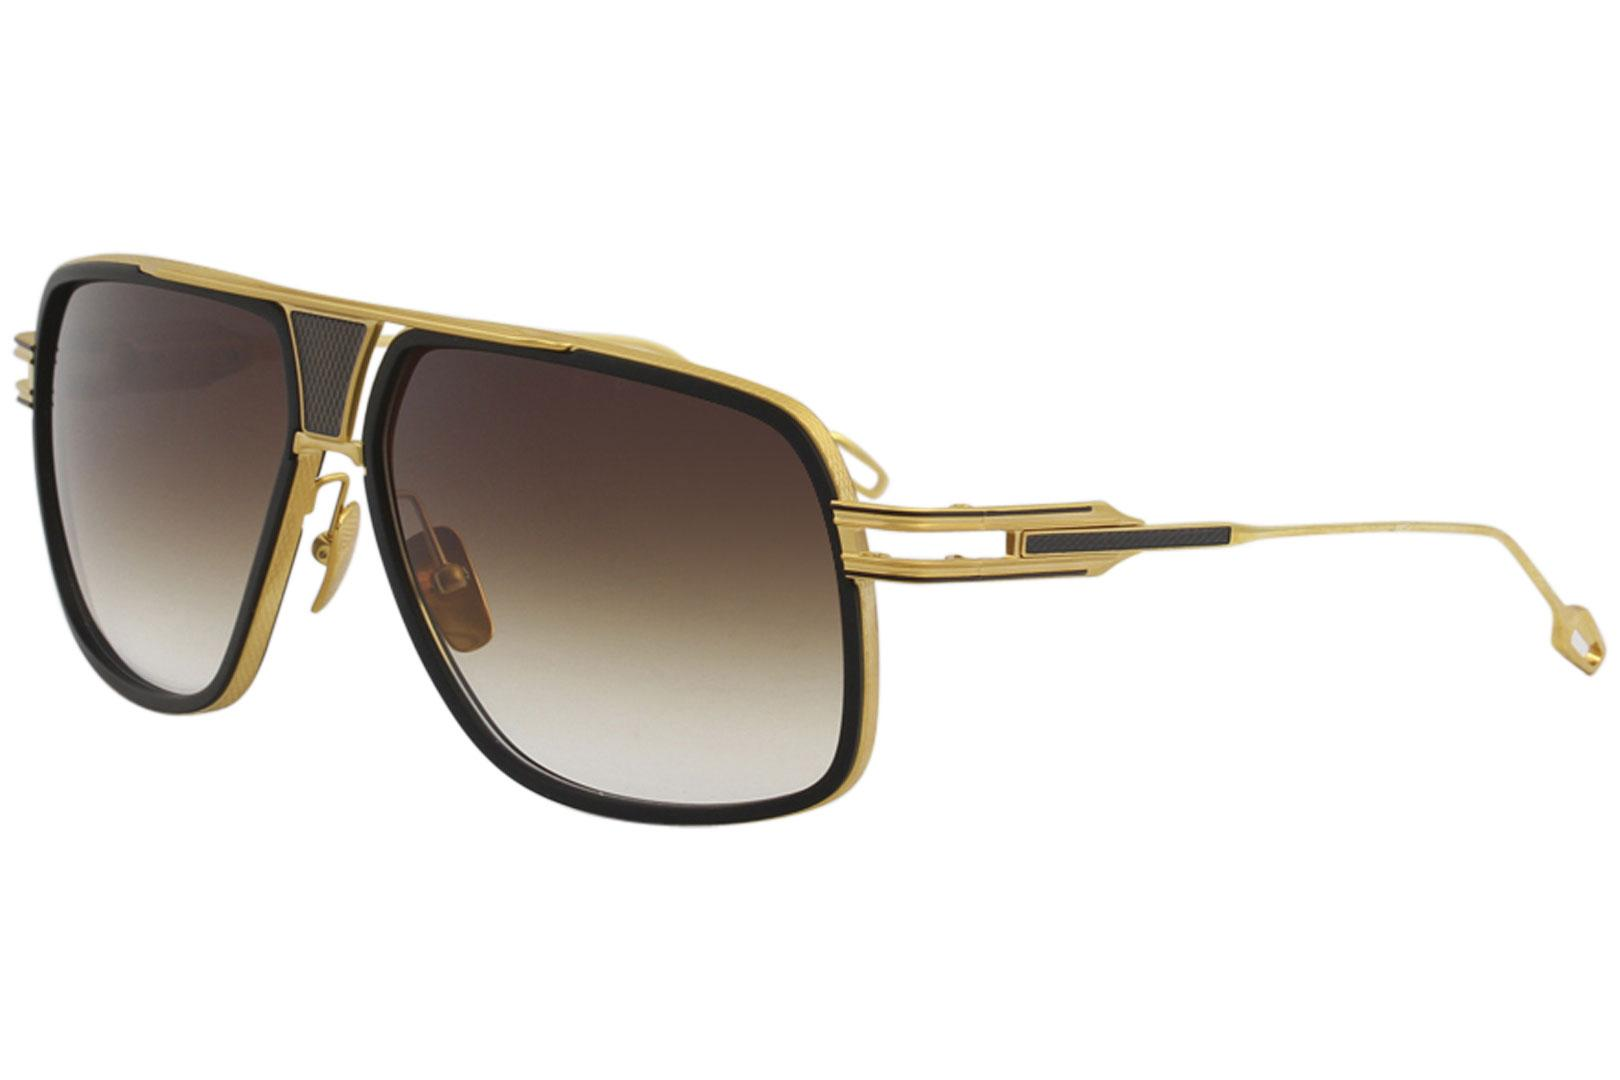 0b31aa9a07b Dita Men s Grandmaster-Five DRX-2077 18K Gold Fashion Pilot Titanium  Sunglasses